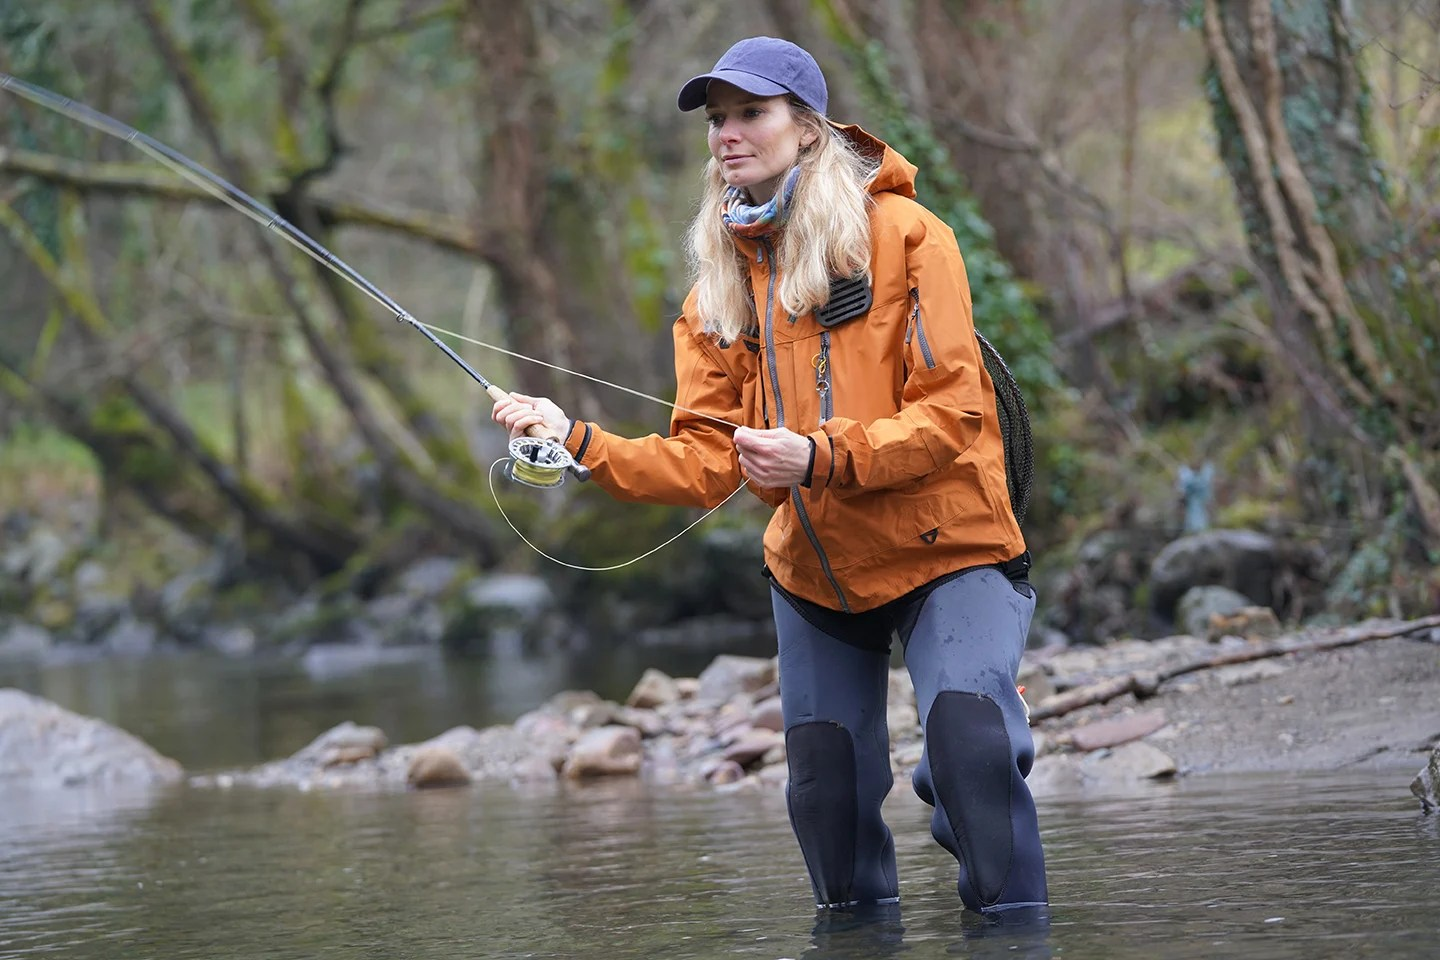 A woman in an orange jacket fly fishing while wading in a stream